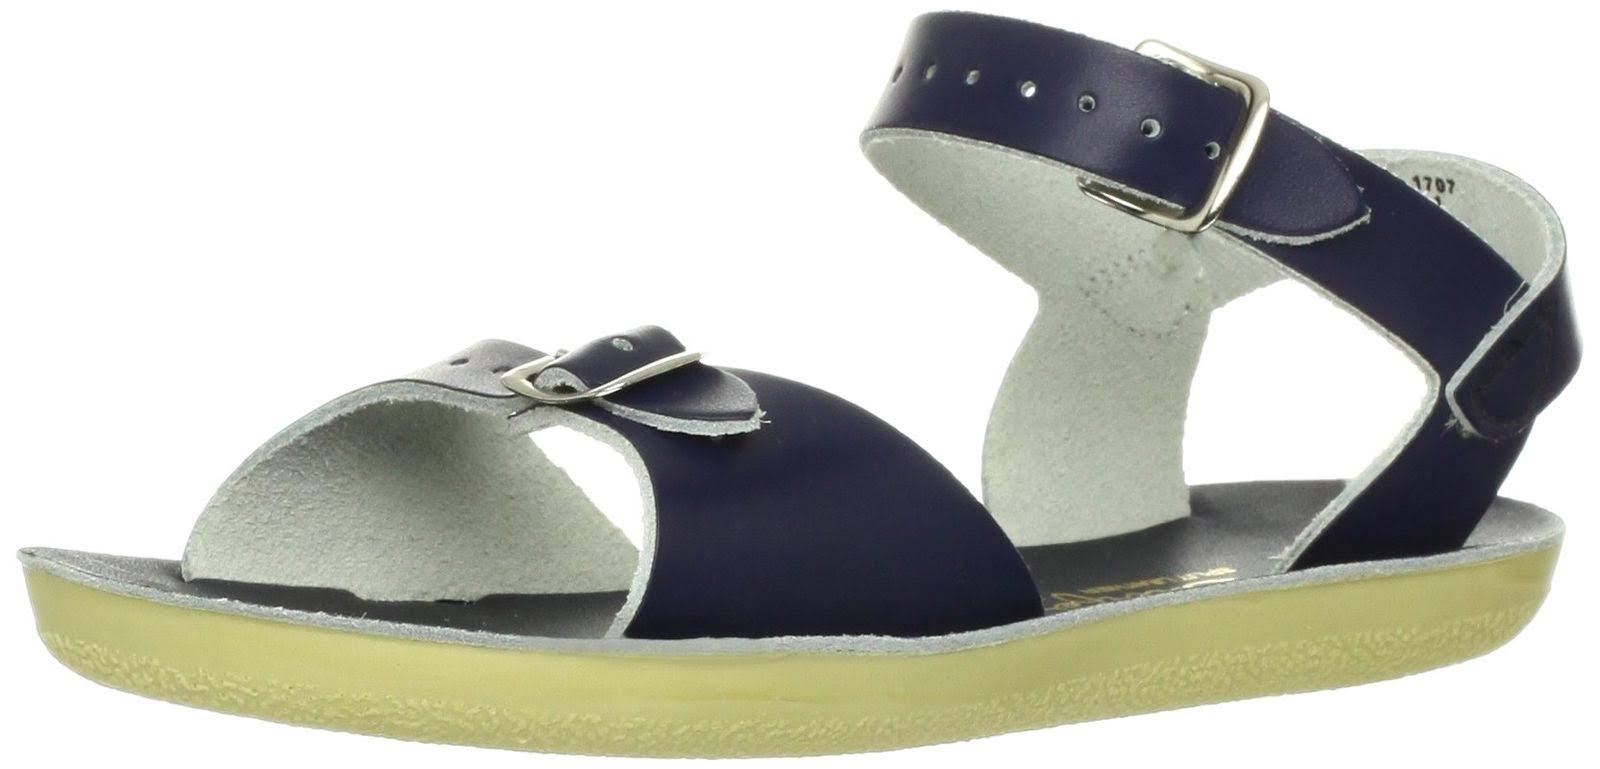 Sun-san Saltwater Surfer Infant Slingback Sandal - Blue, 4 US